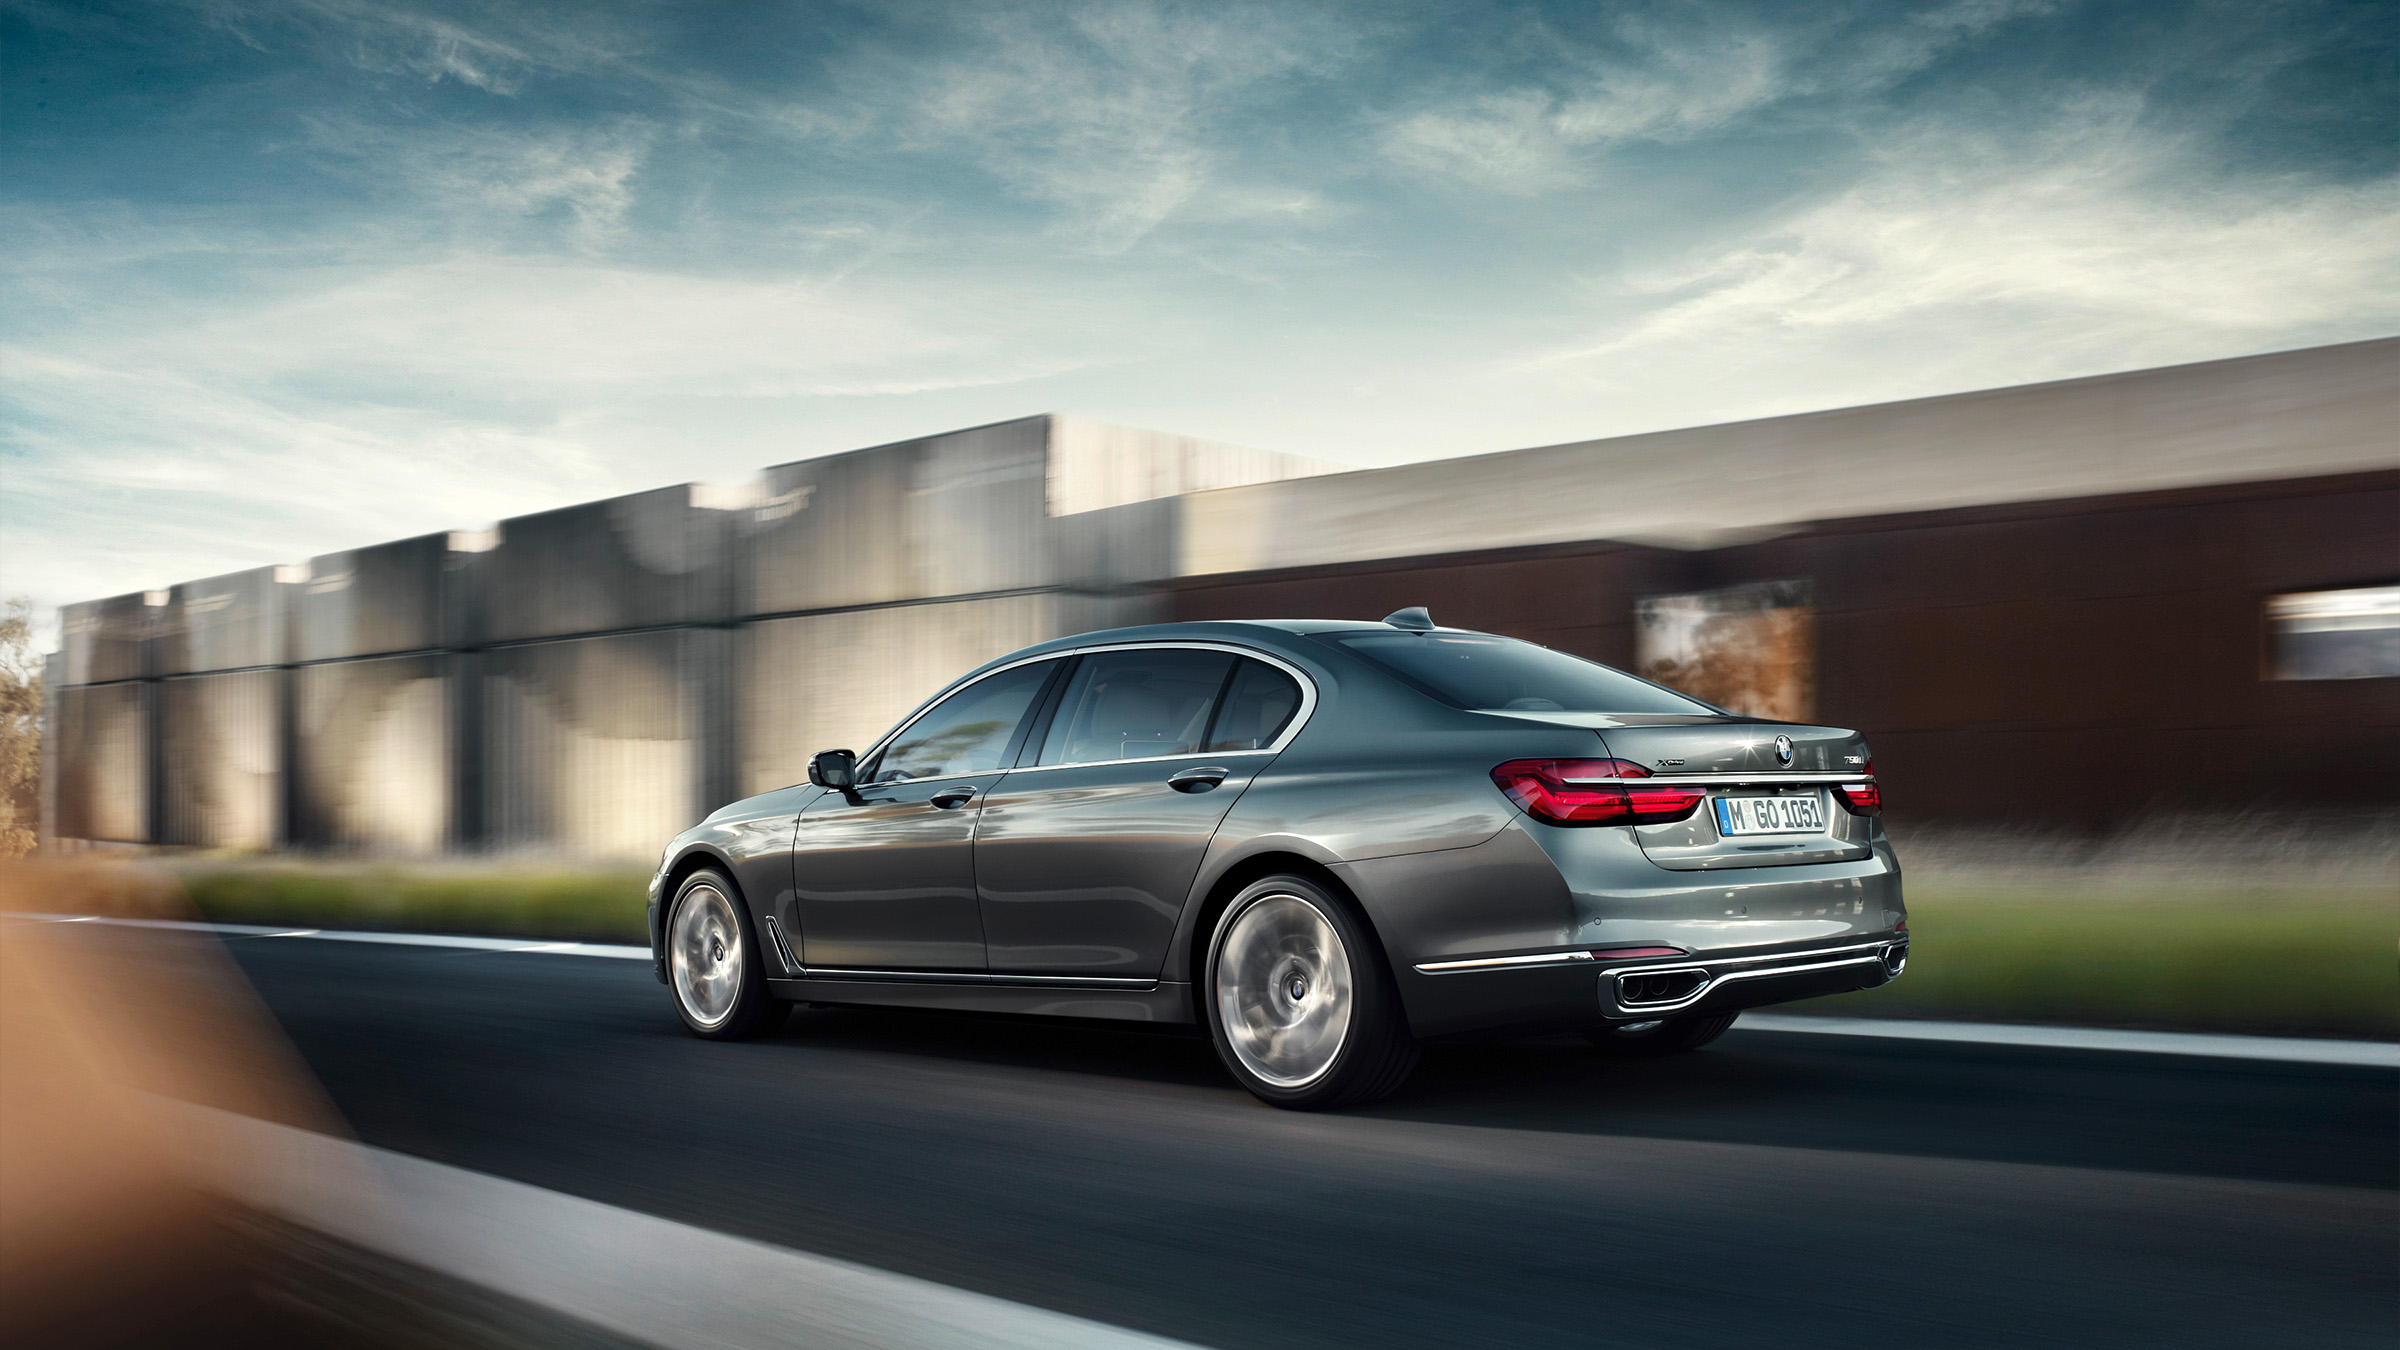 BMW_7ER_EMIR_HAVERIC_06_2400